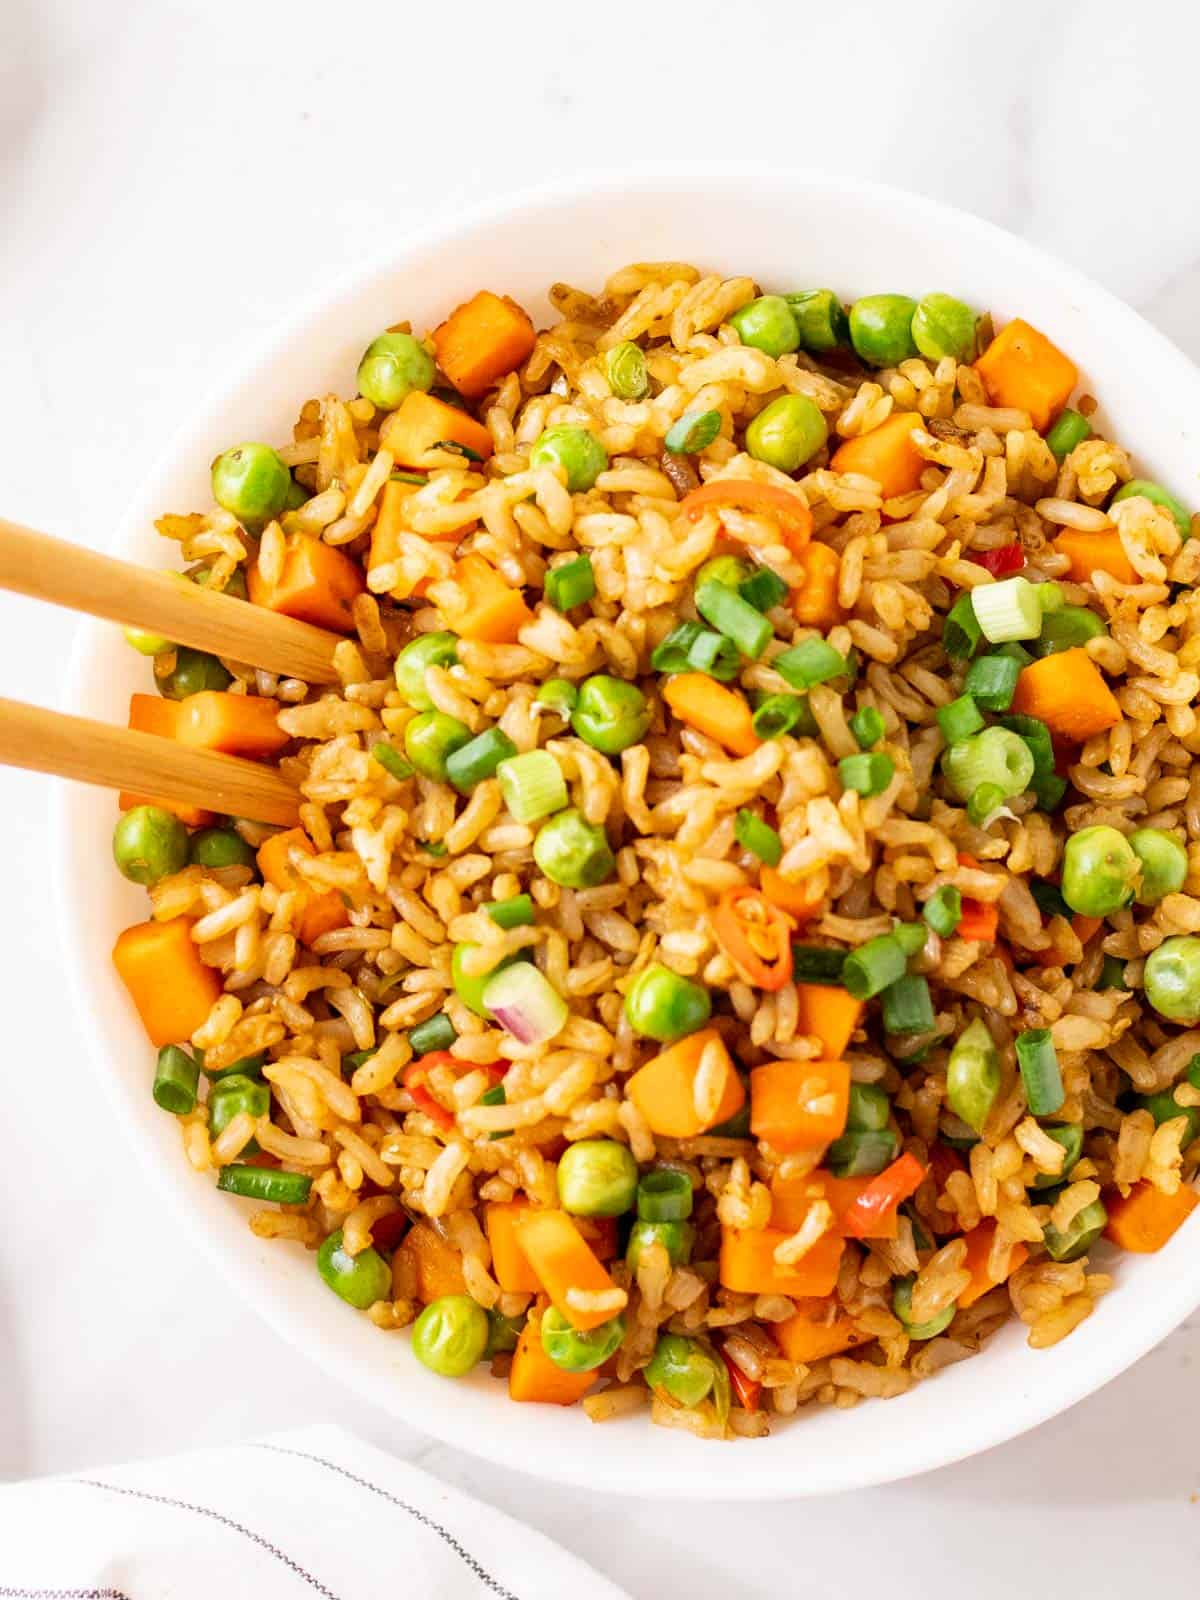 Overhead shot of vegan tom yum fried rice in a bowl with chopsticks on the side.